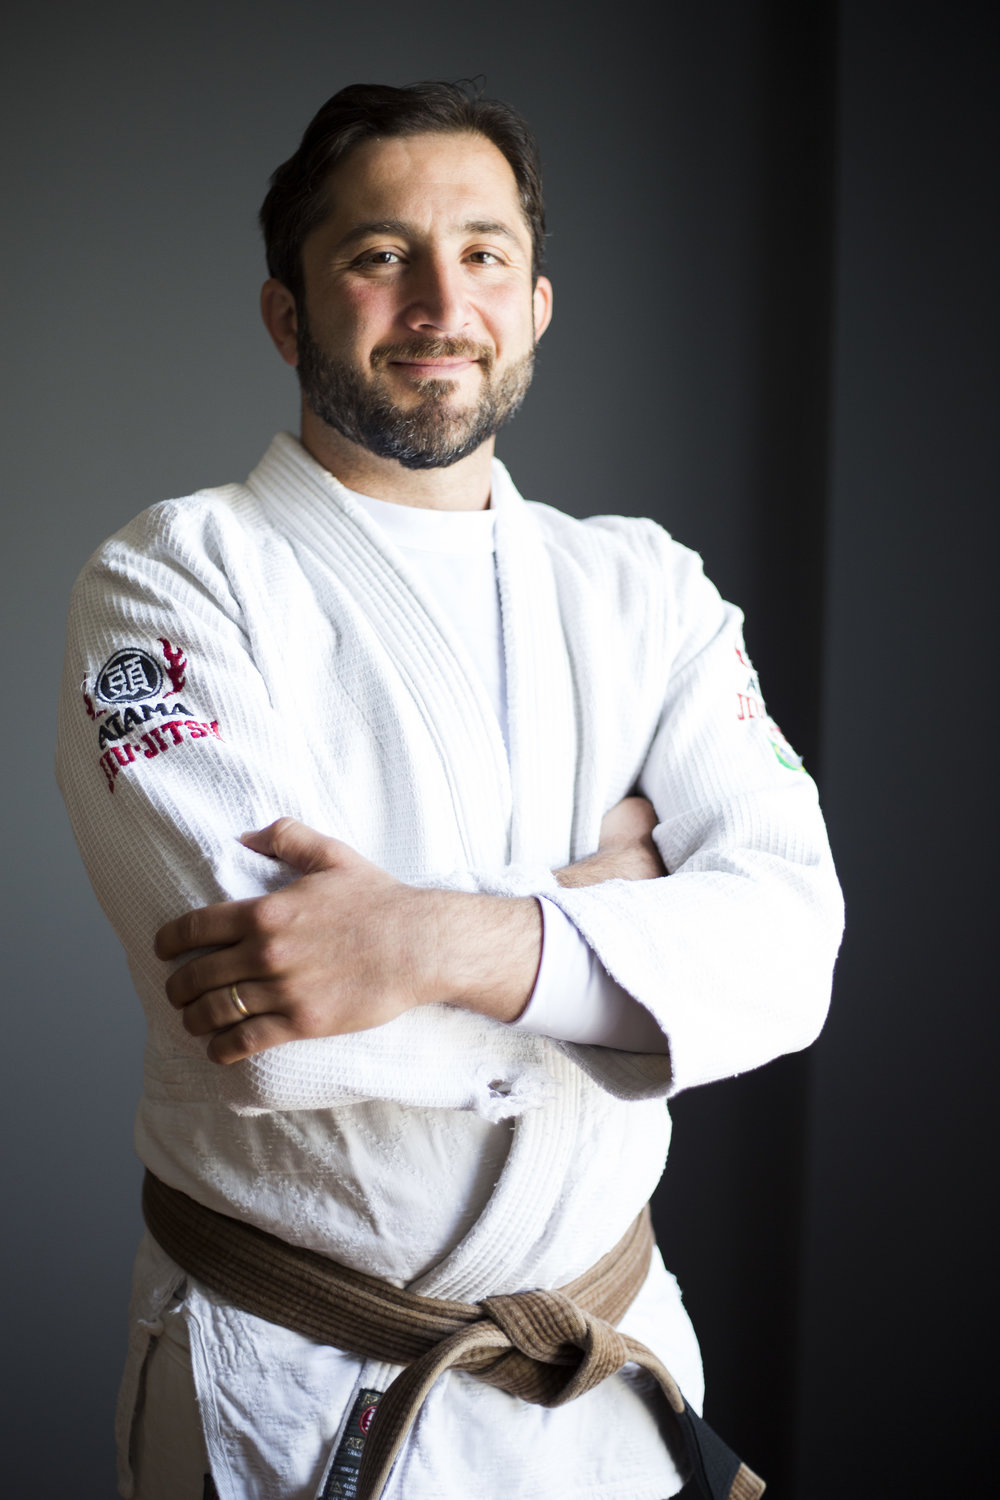 Emilio DeLia - Founder, Lead Instructor